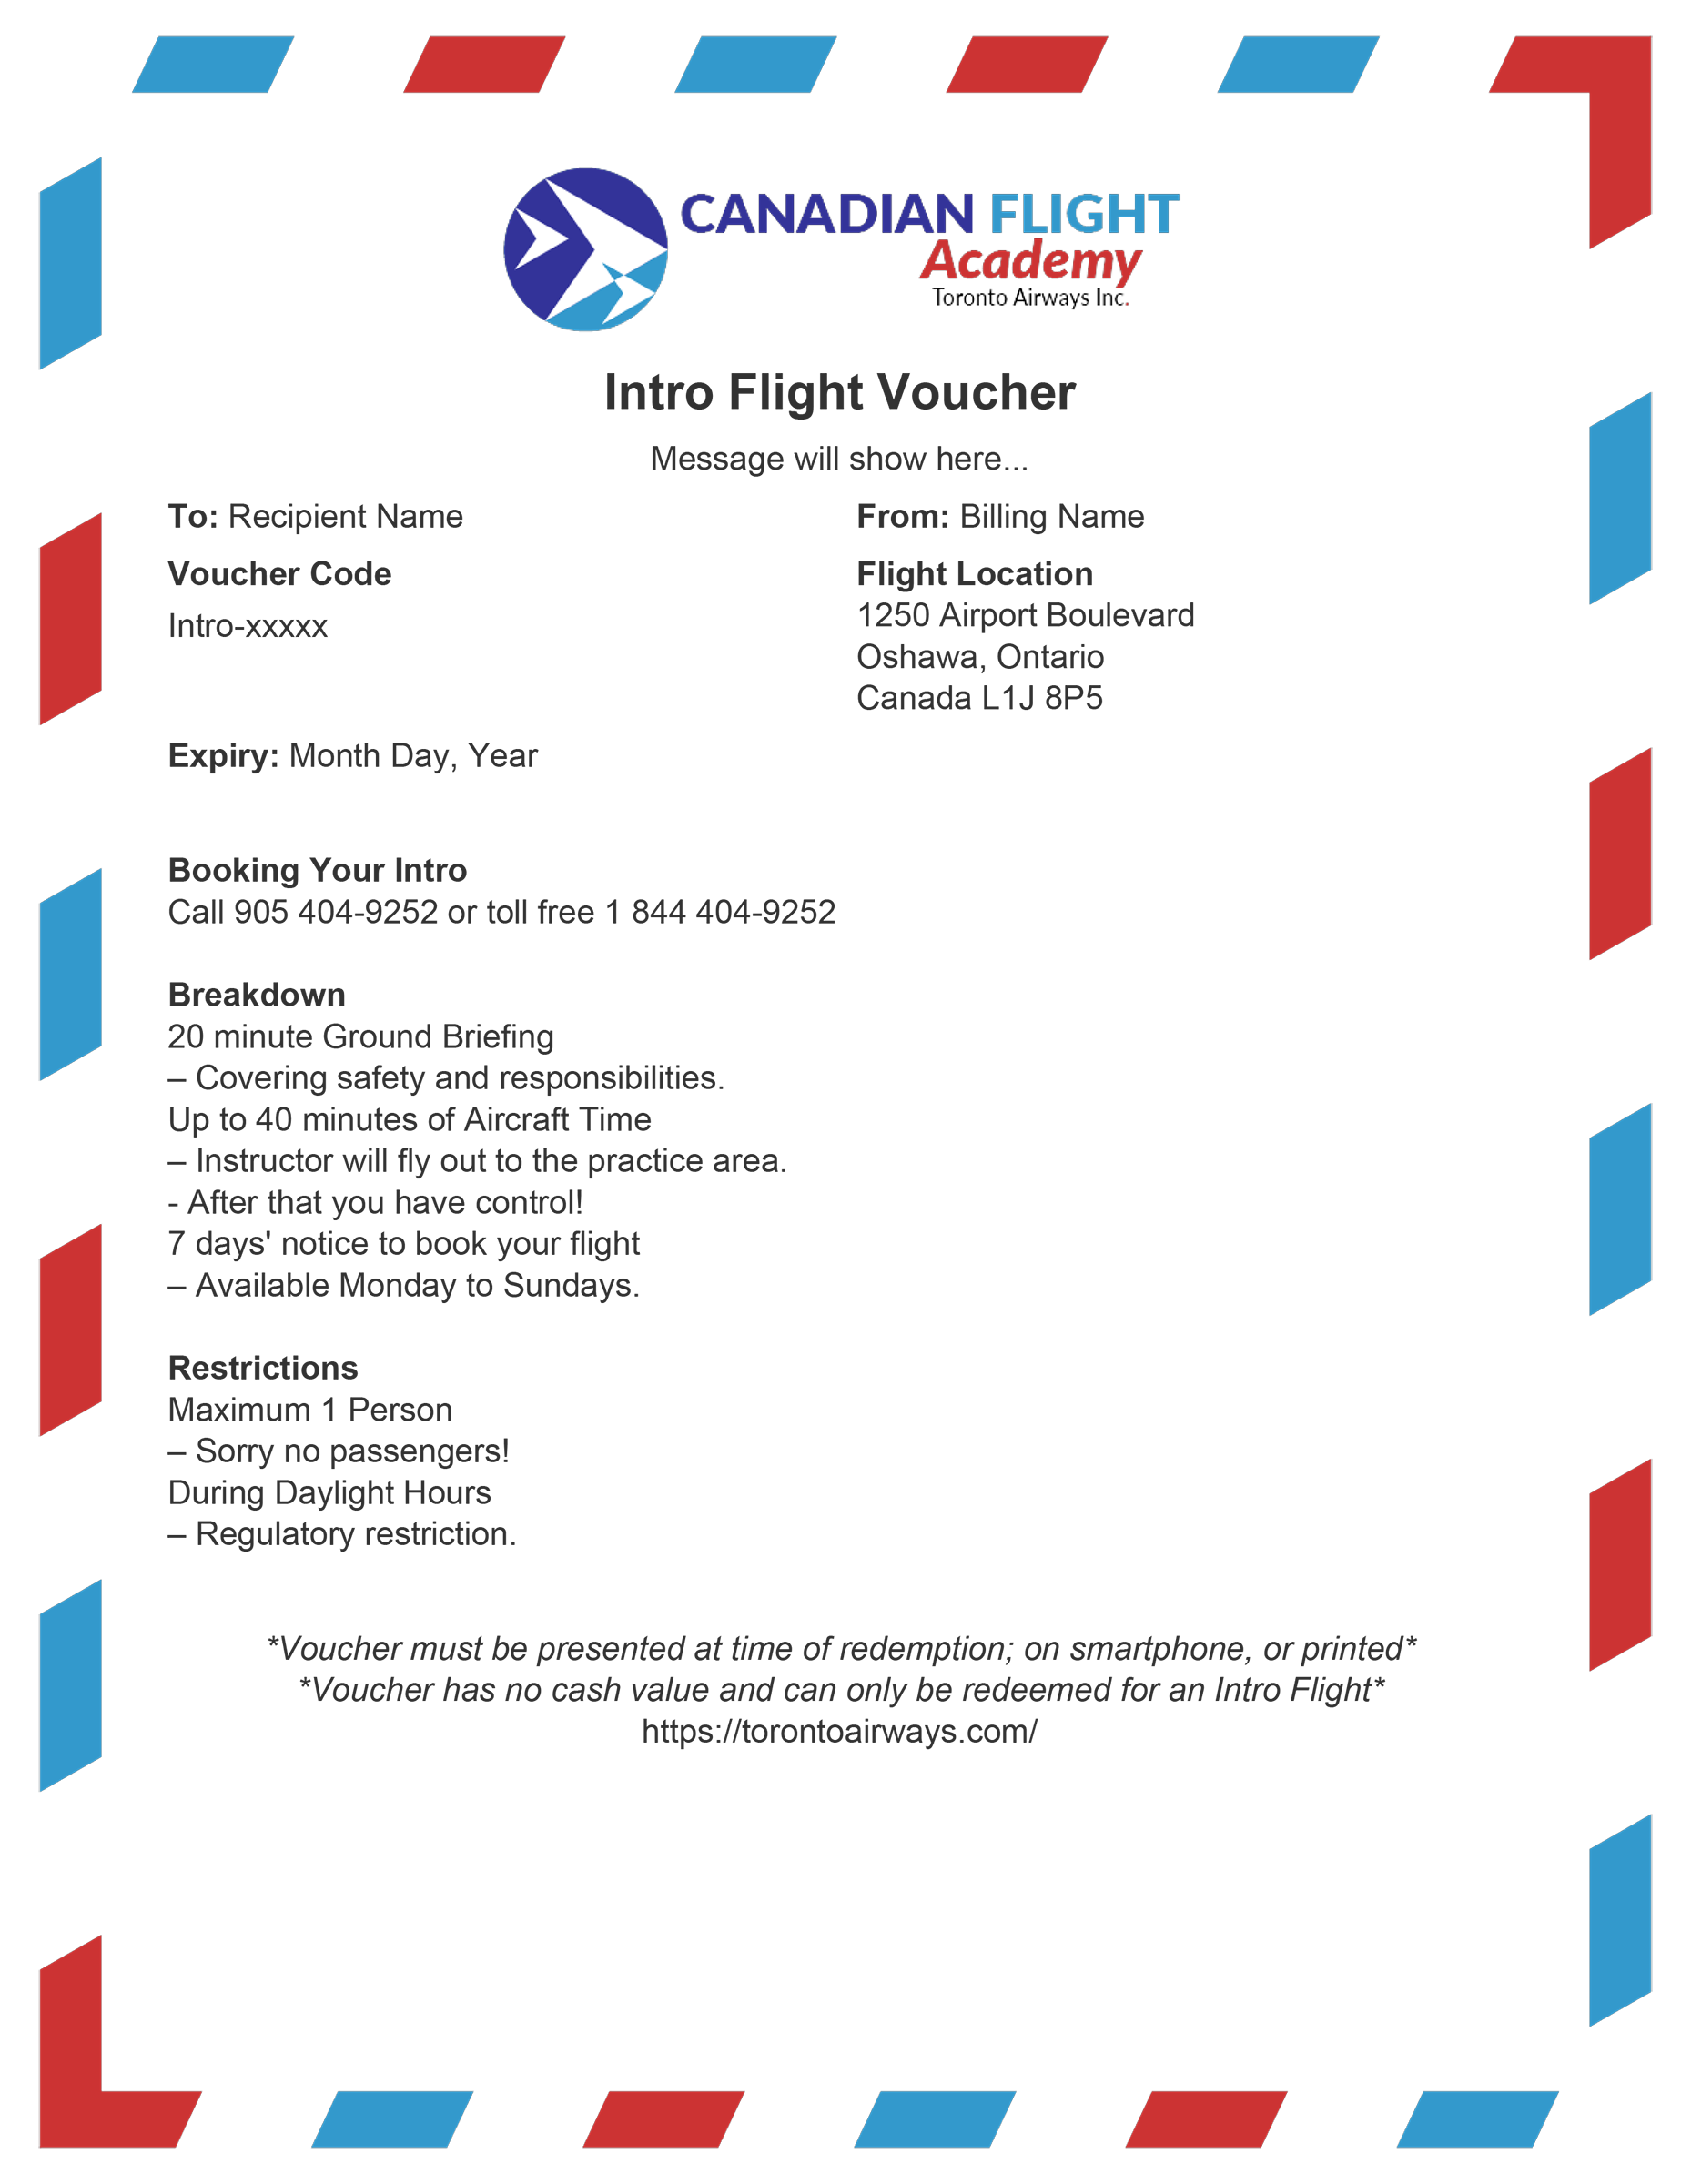 Canadian Flight Academy Voucher Sample